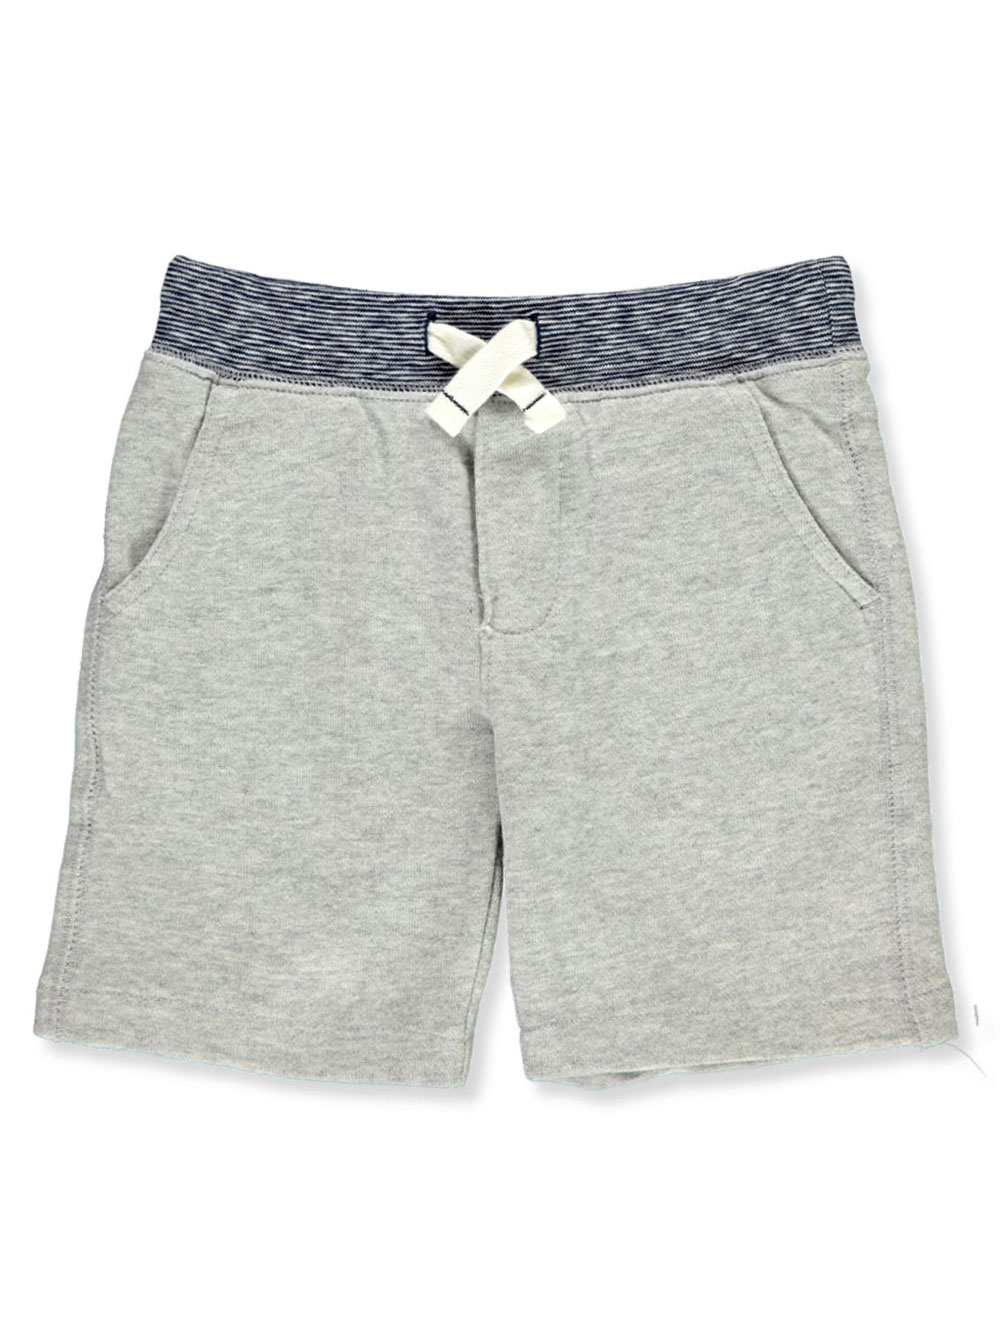 Boys Heather Gray Shorts